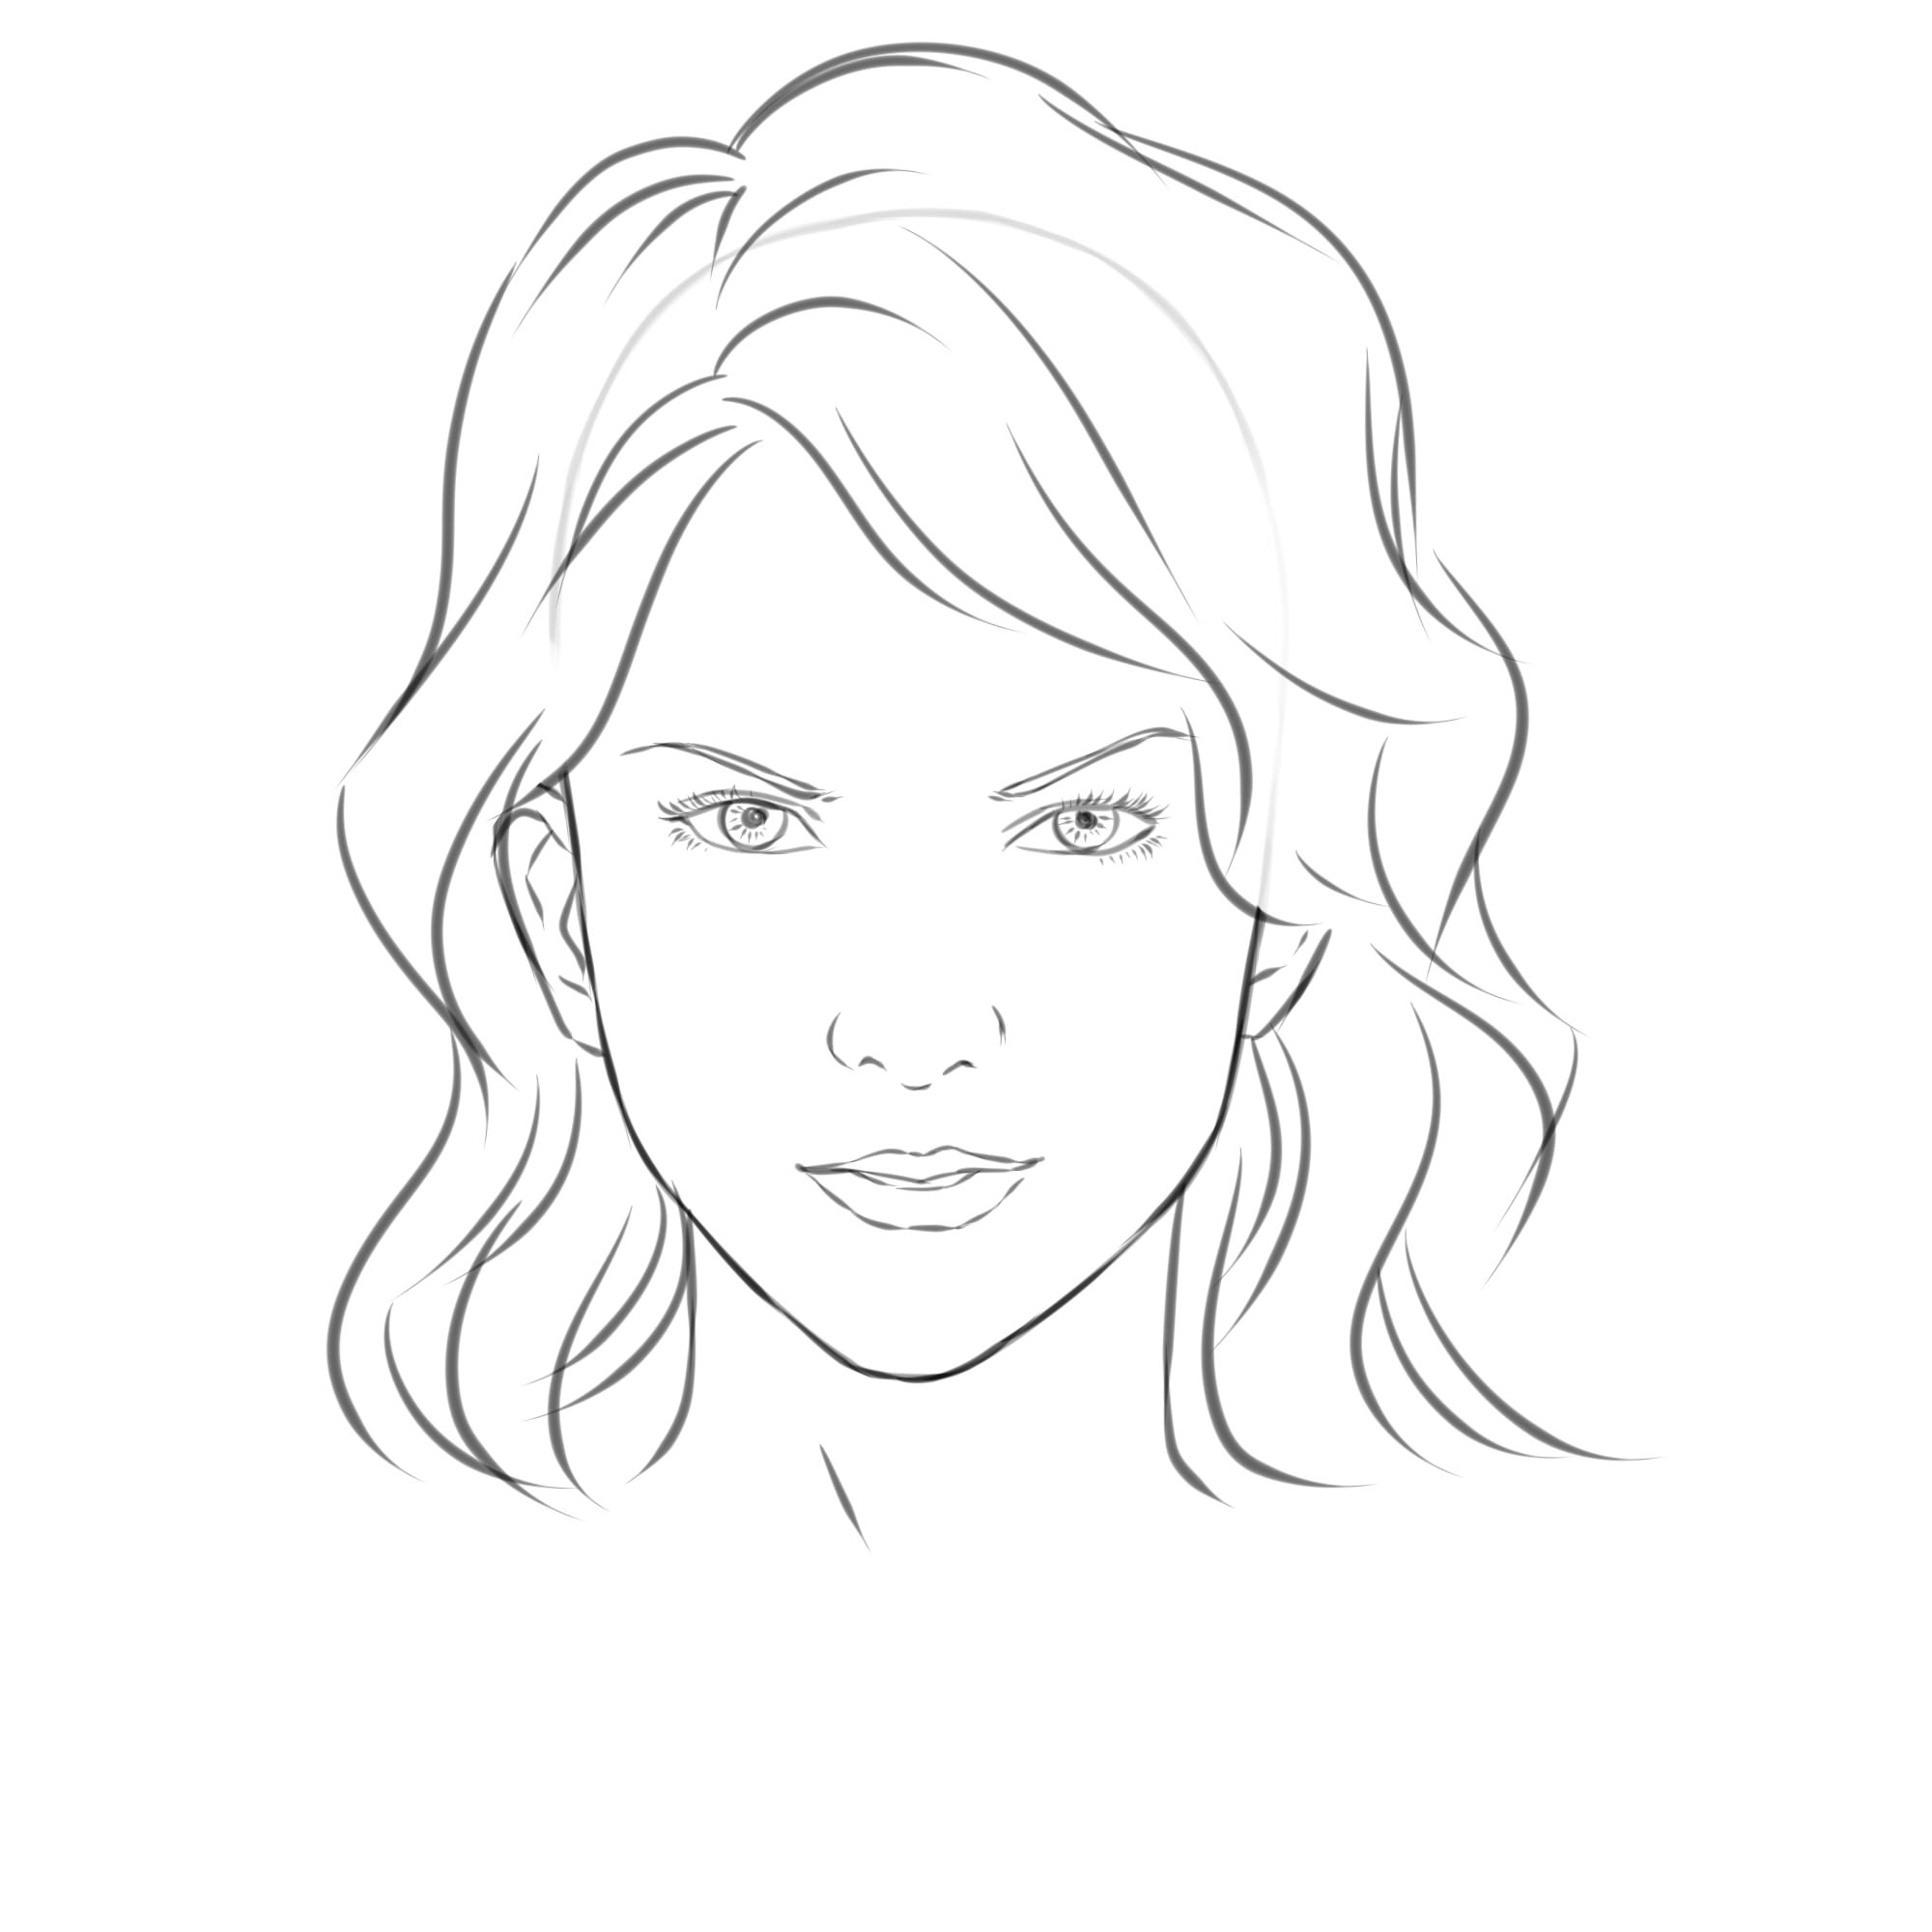 2000x2000 Draw A Girl's Face Face Drawings, Female Faces And Drawings